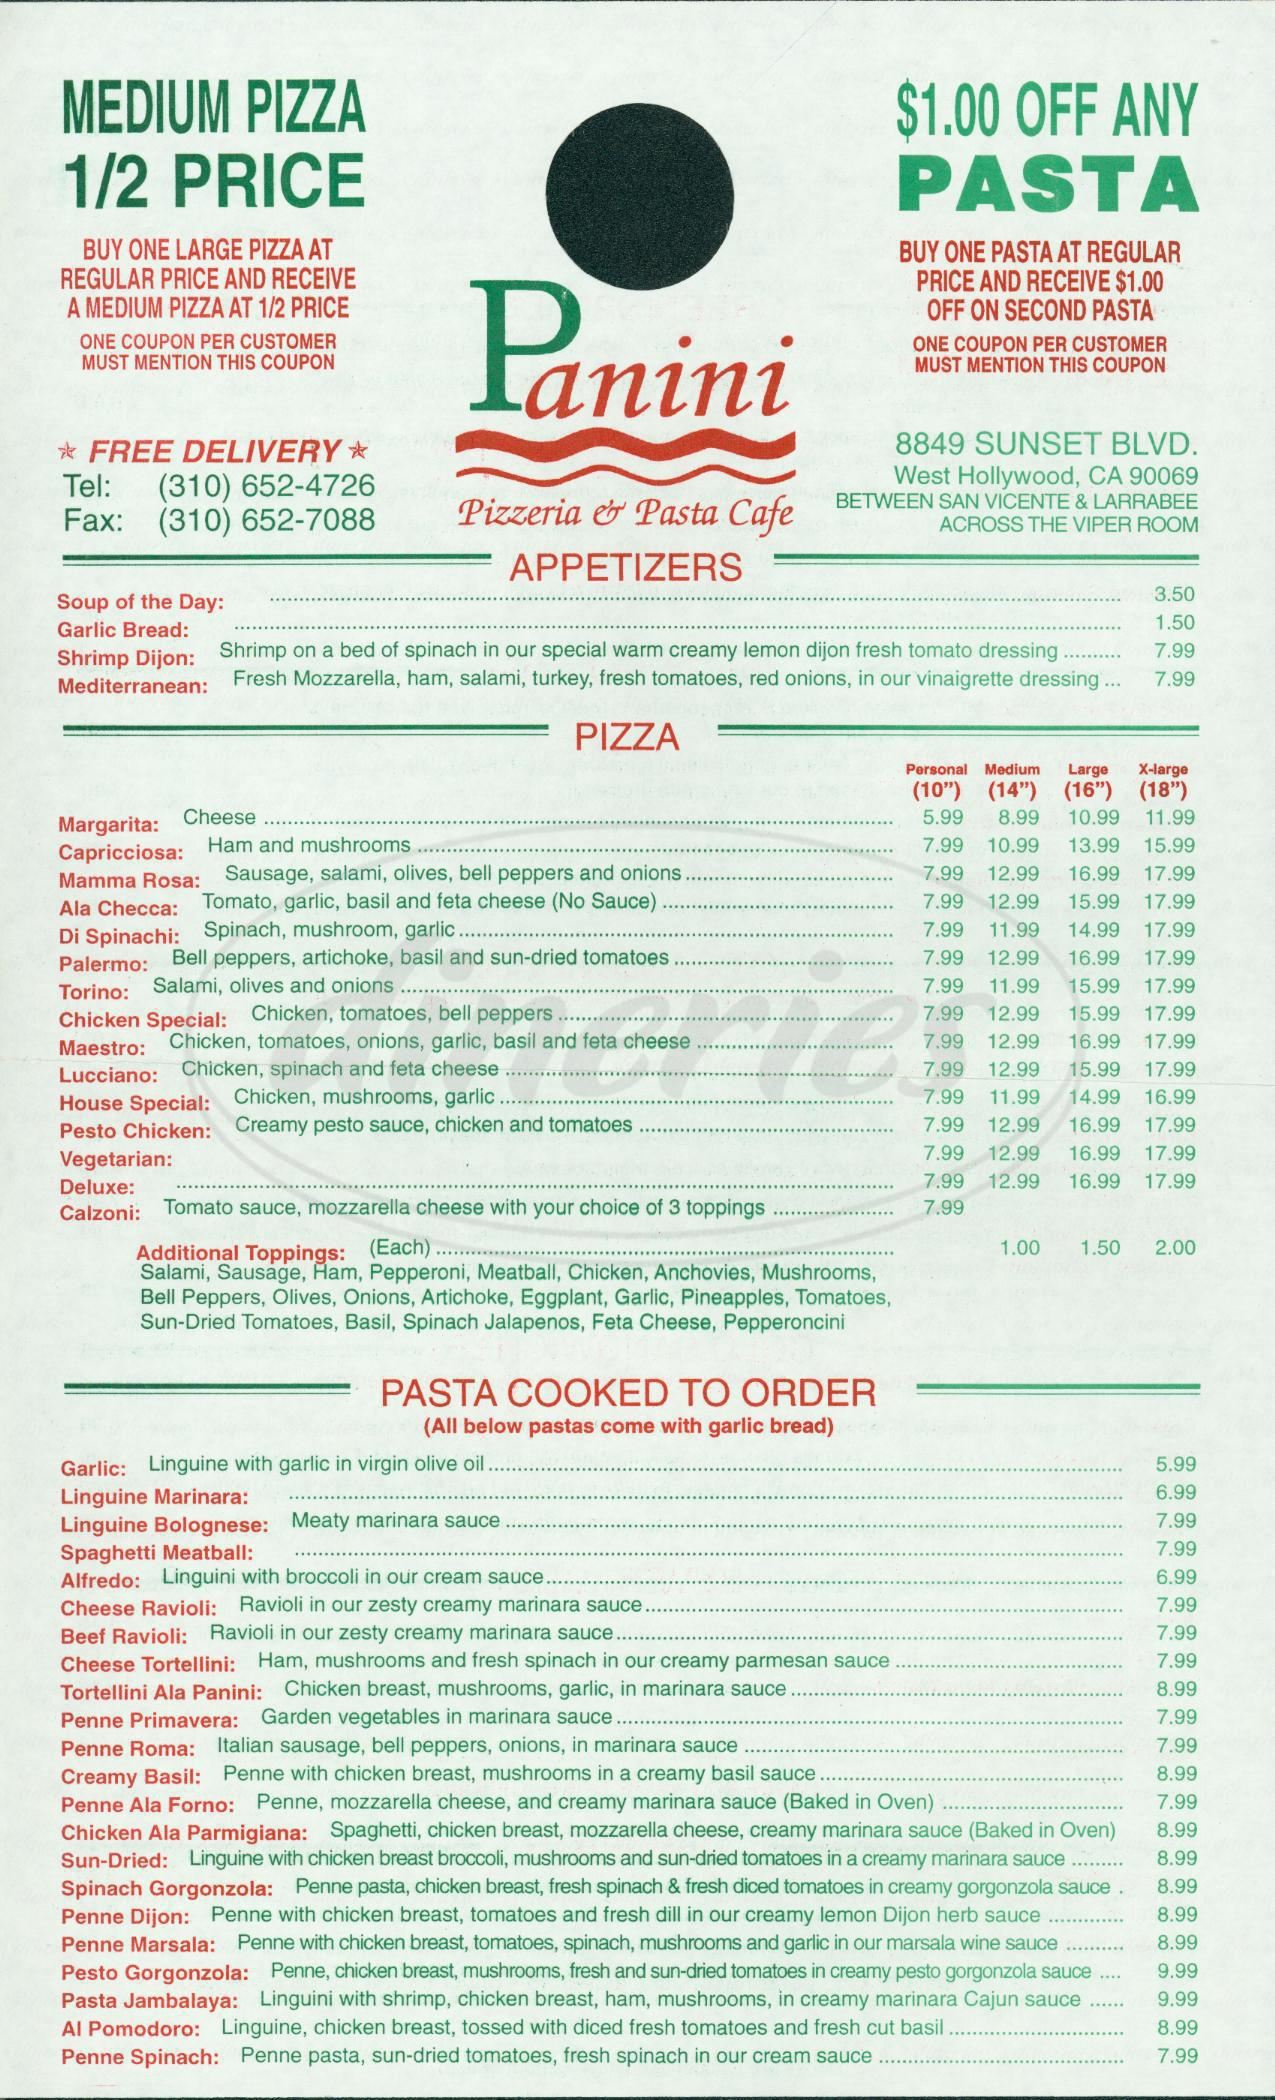 menu for Panini Pizzeria & Pasta Cafe